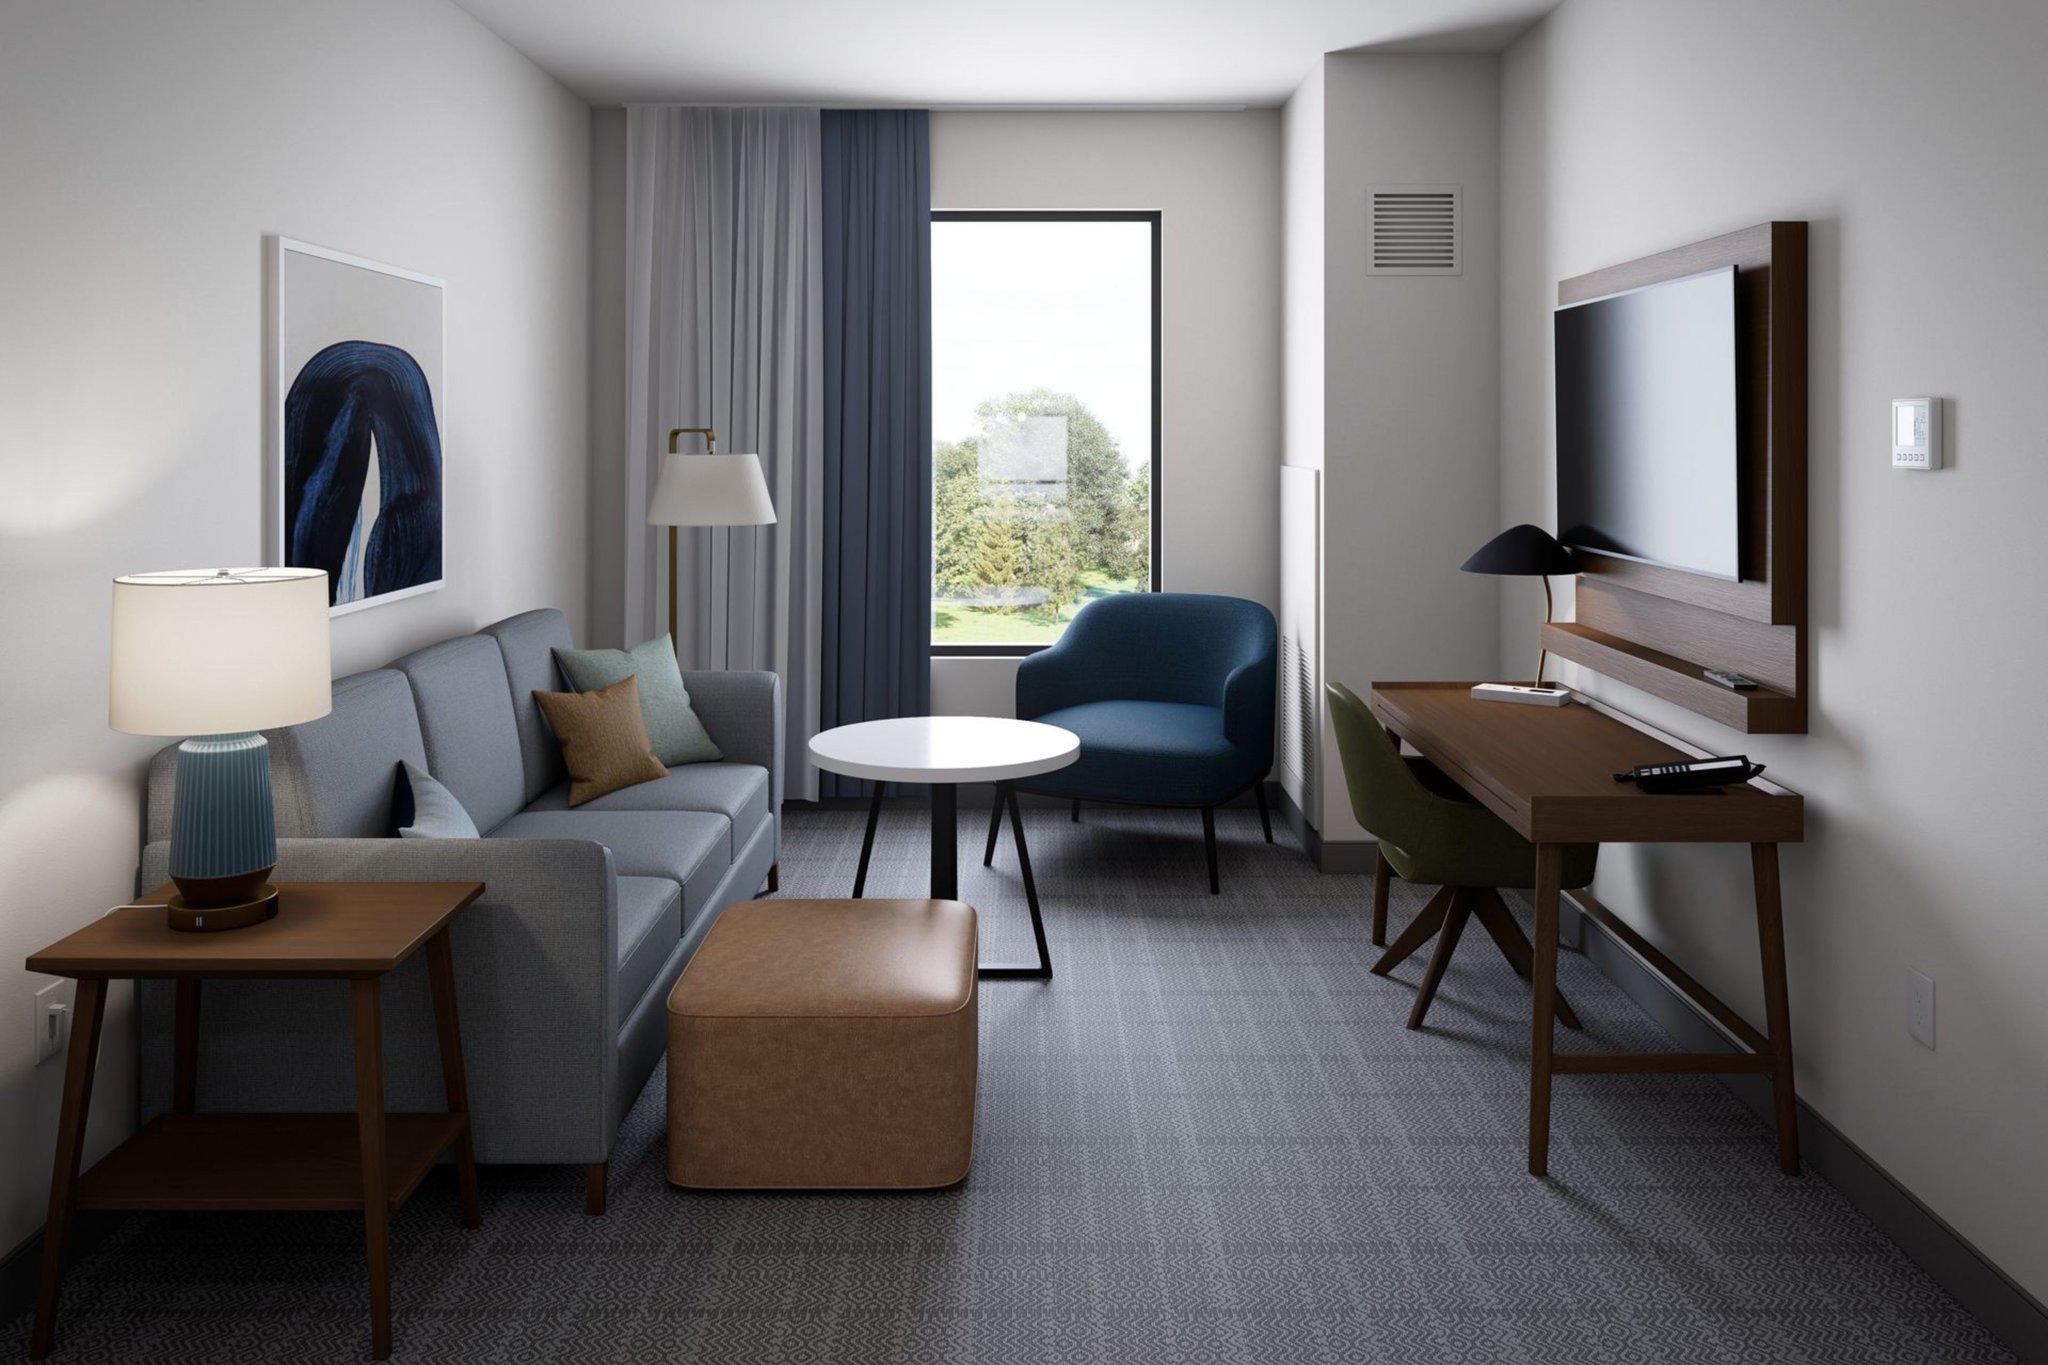 Staybridge Suites Rochester - St Mary's Area, an IHG Hotel